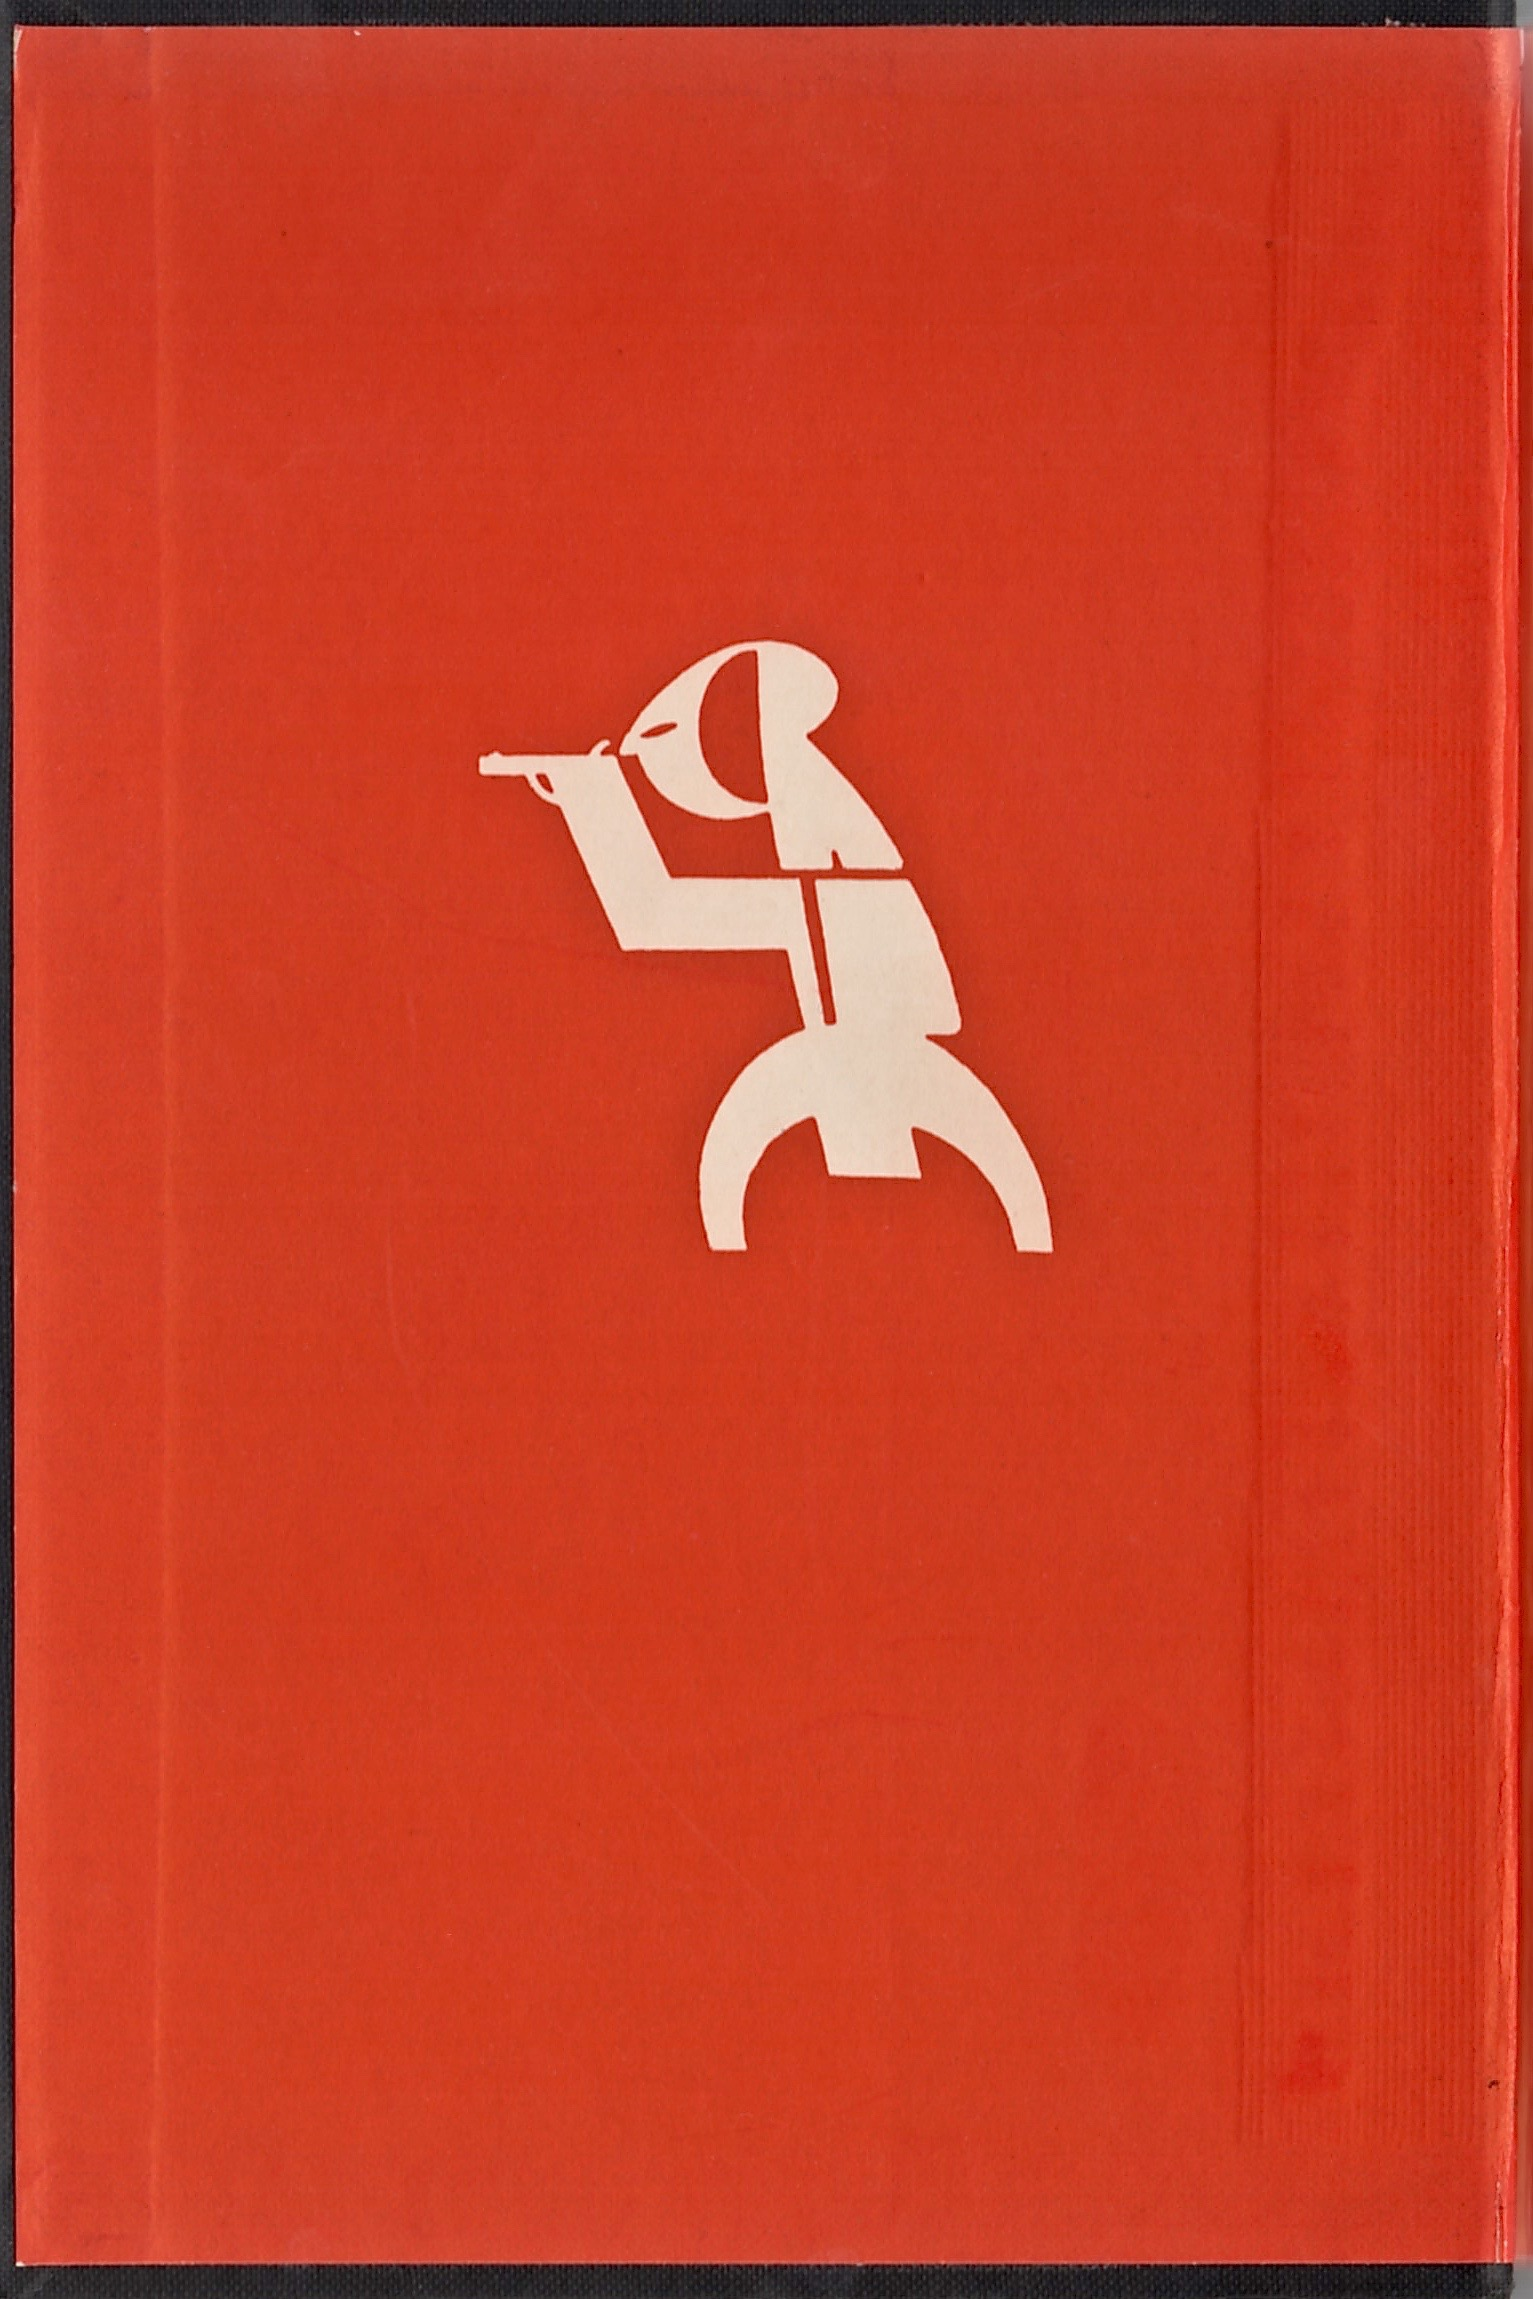 The endpapers to Dead Man Inside feature the Crime Club logo, with the letters CRIME fit into a figure of a human firing a gun.